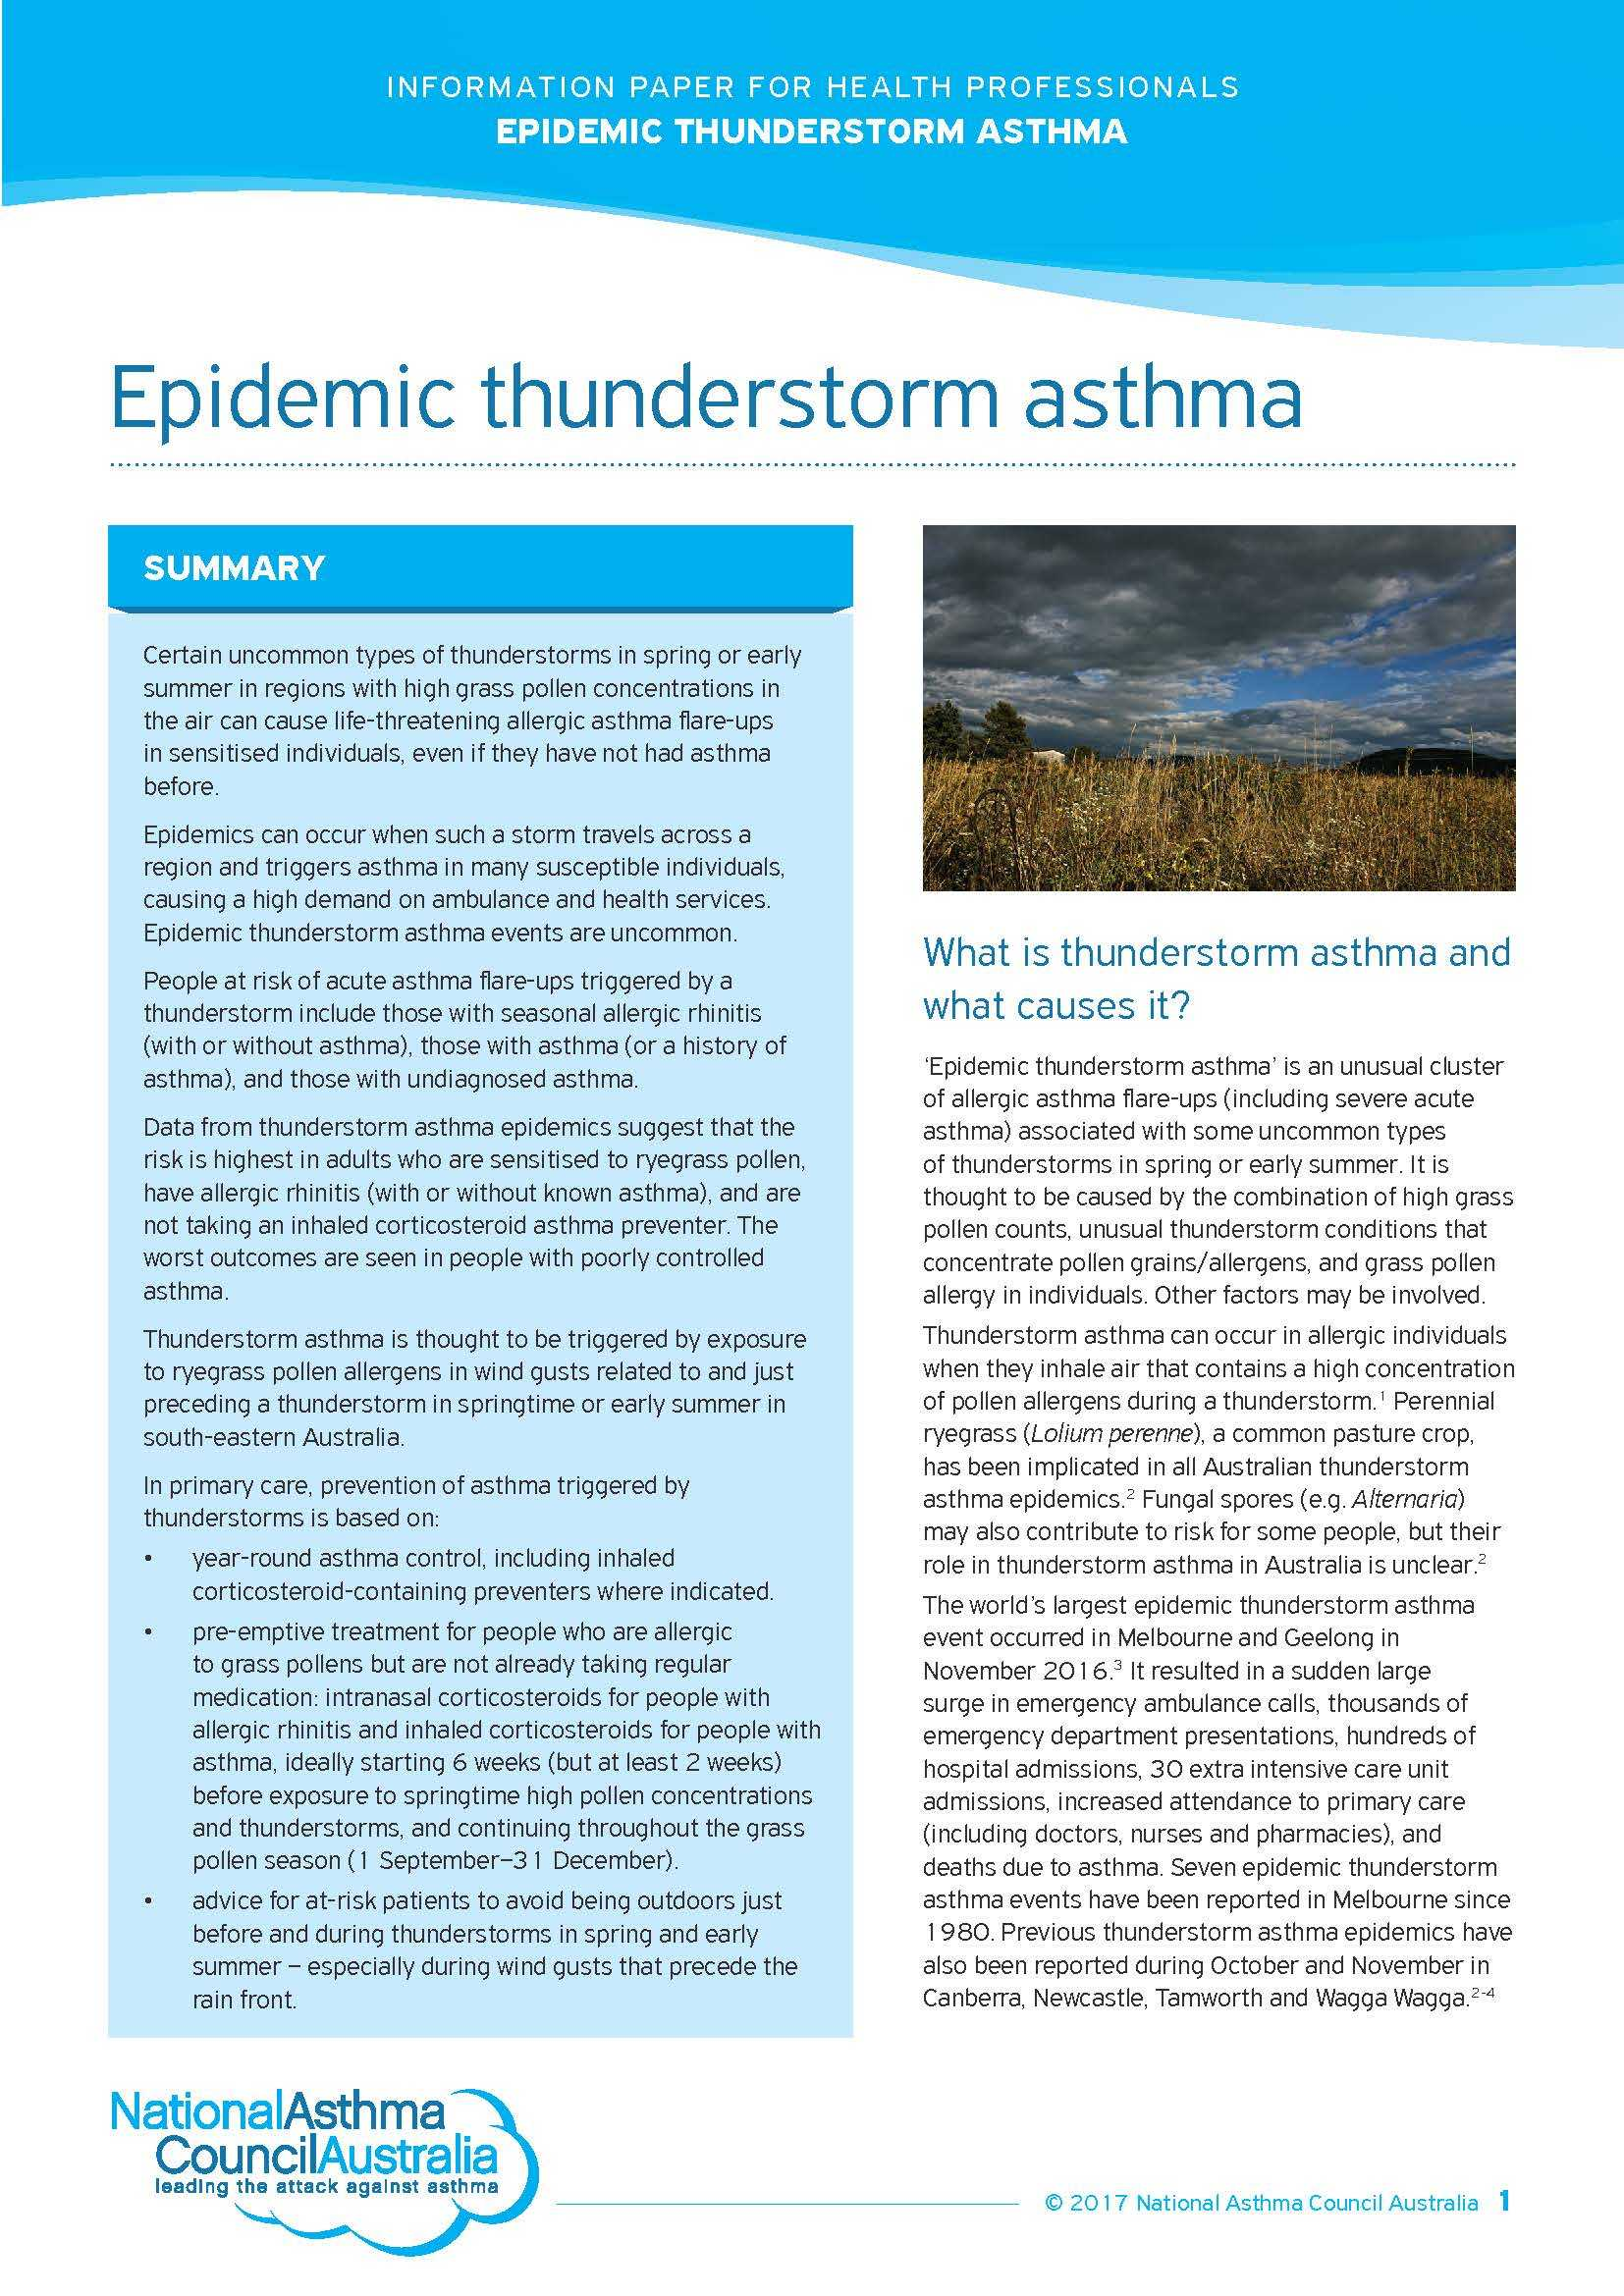 Epidemic thunderstorm asthma information paper